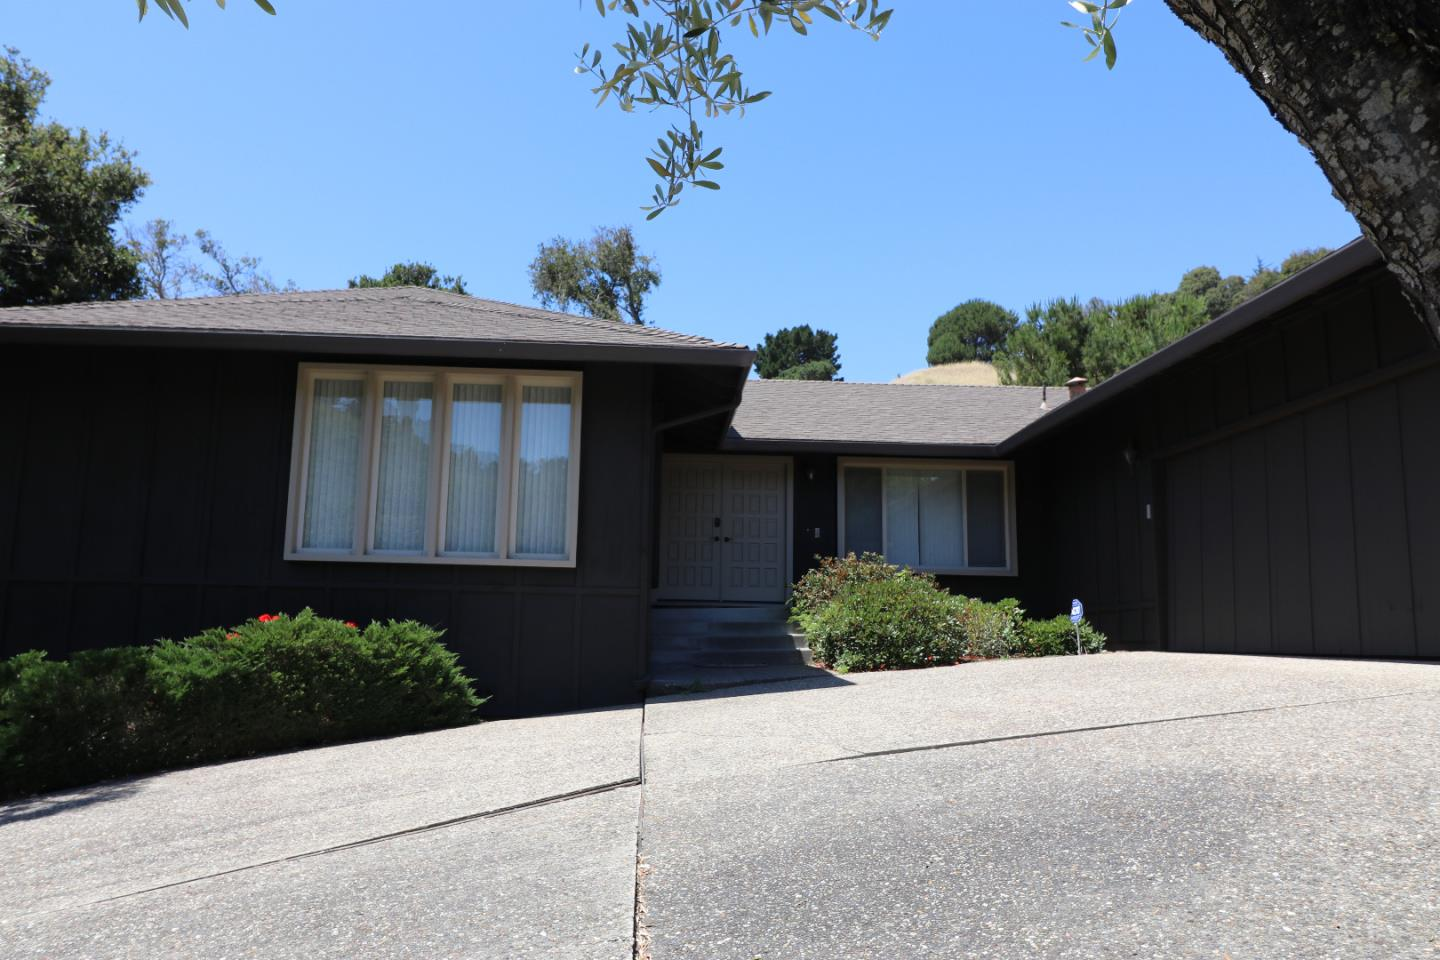 Photo of 22650 Gallant Fox RD, MONTEREY, CA 93940